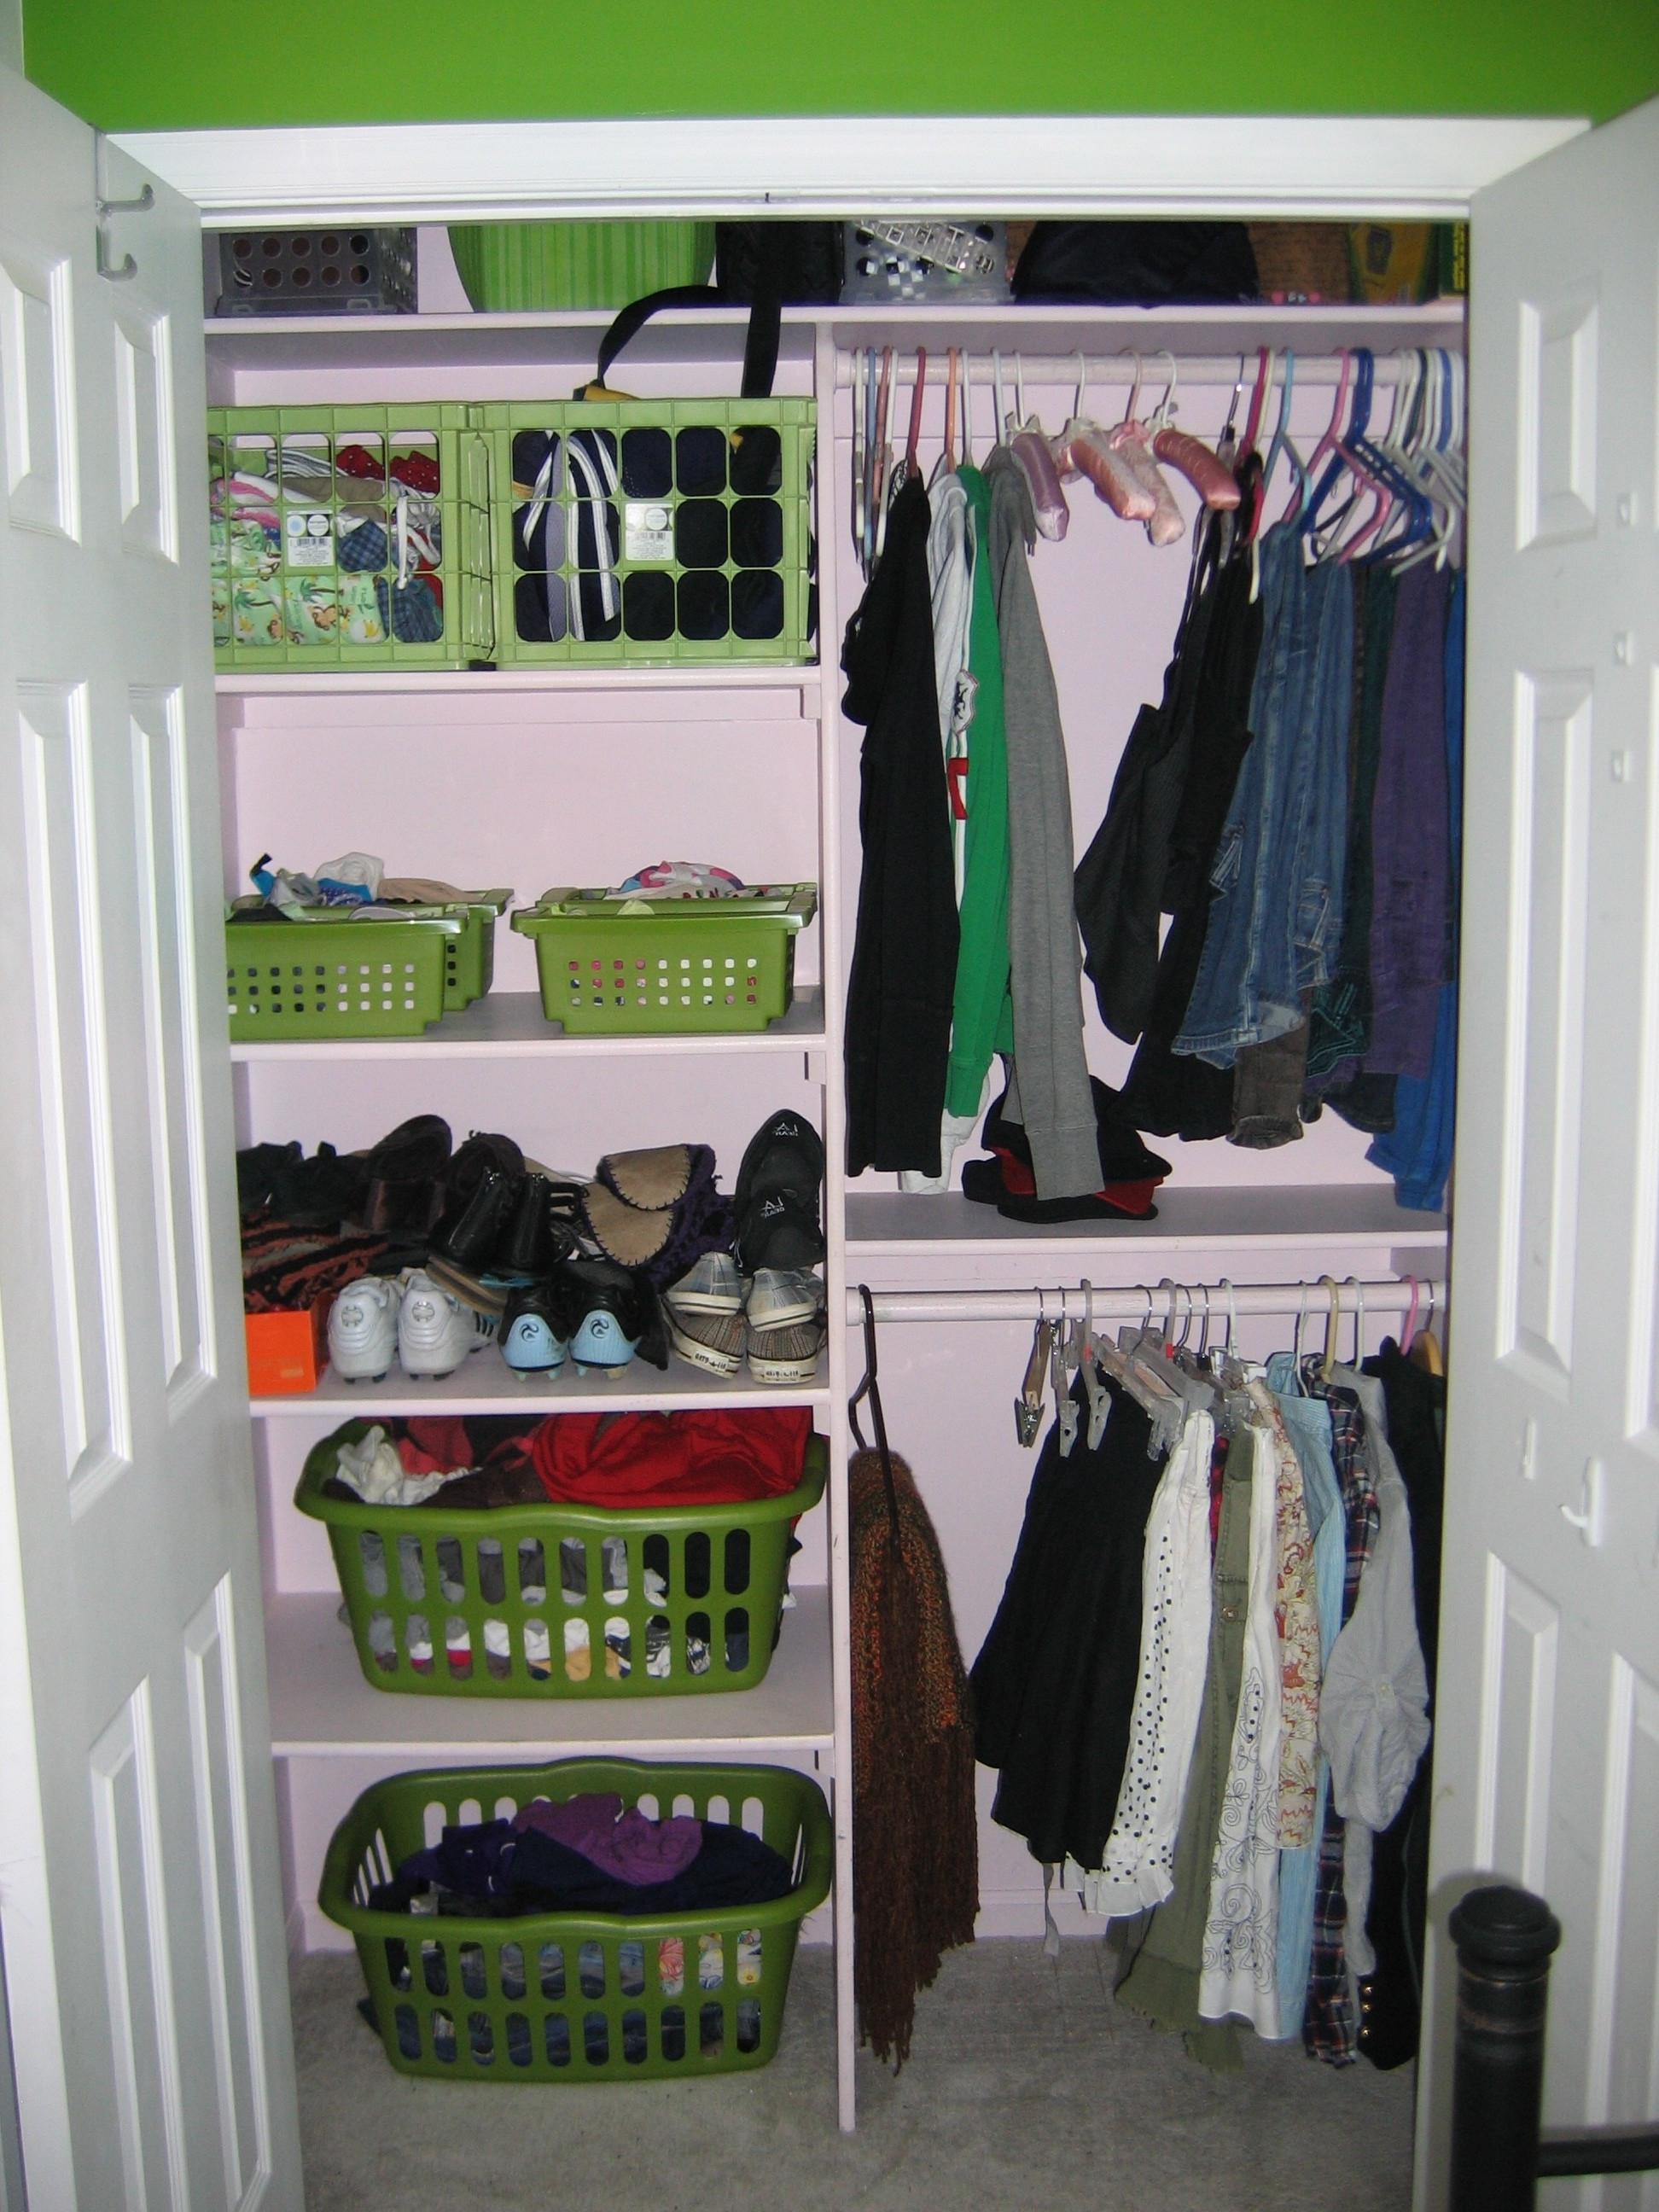 Closet Storage : Sliding Wardrobes Closet Organization Ideas For Latest Bedroom Wardrobes Storages (View 7 of 15)